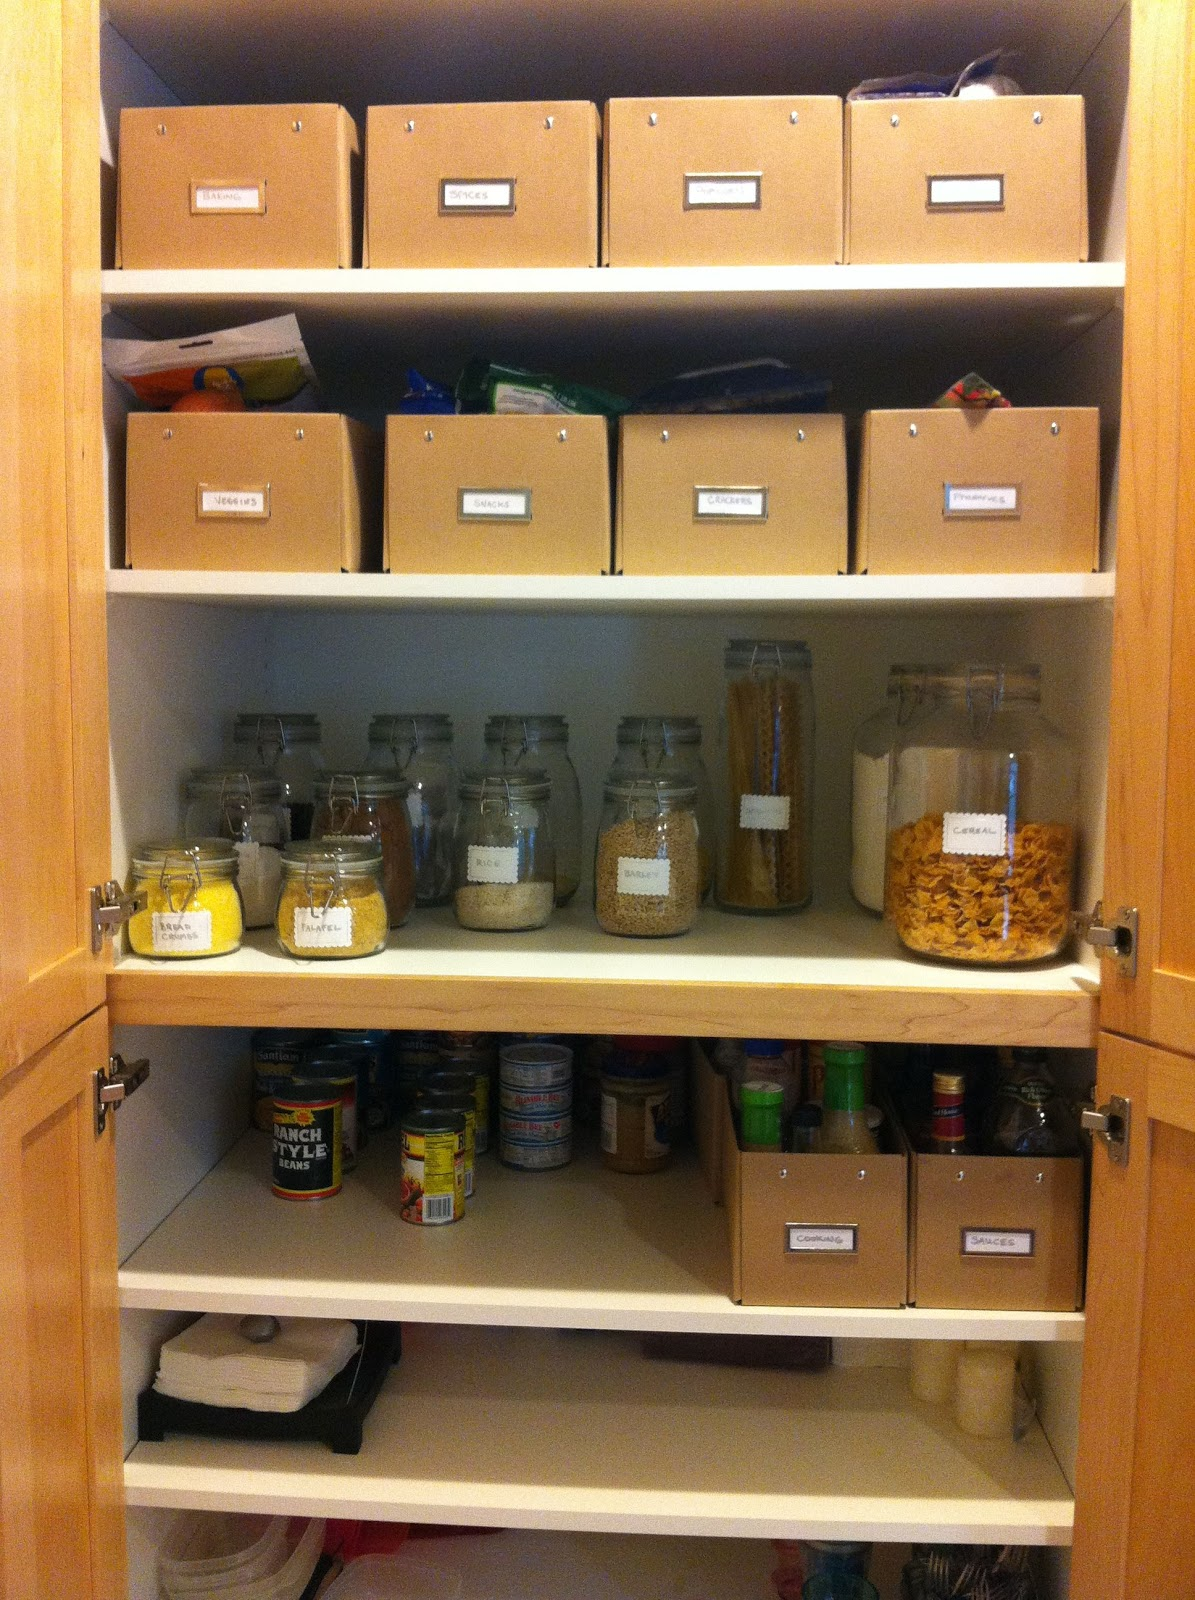 Organize Kitchen Cabinets Home Decor Diy Ideas Organizing Grocery Cabinets